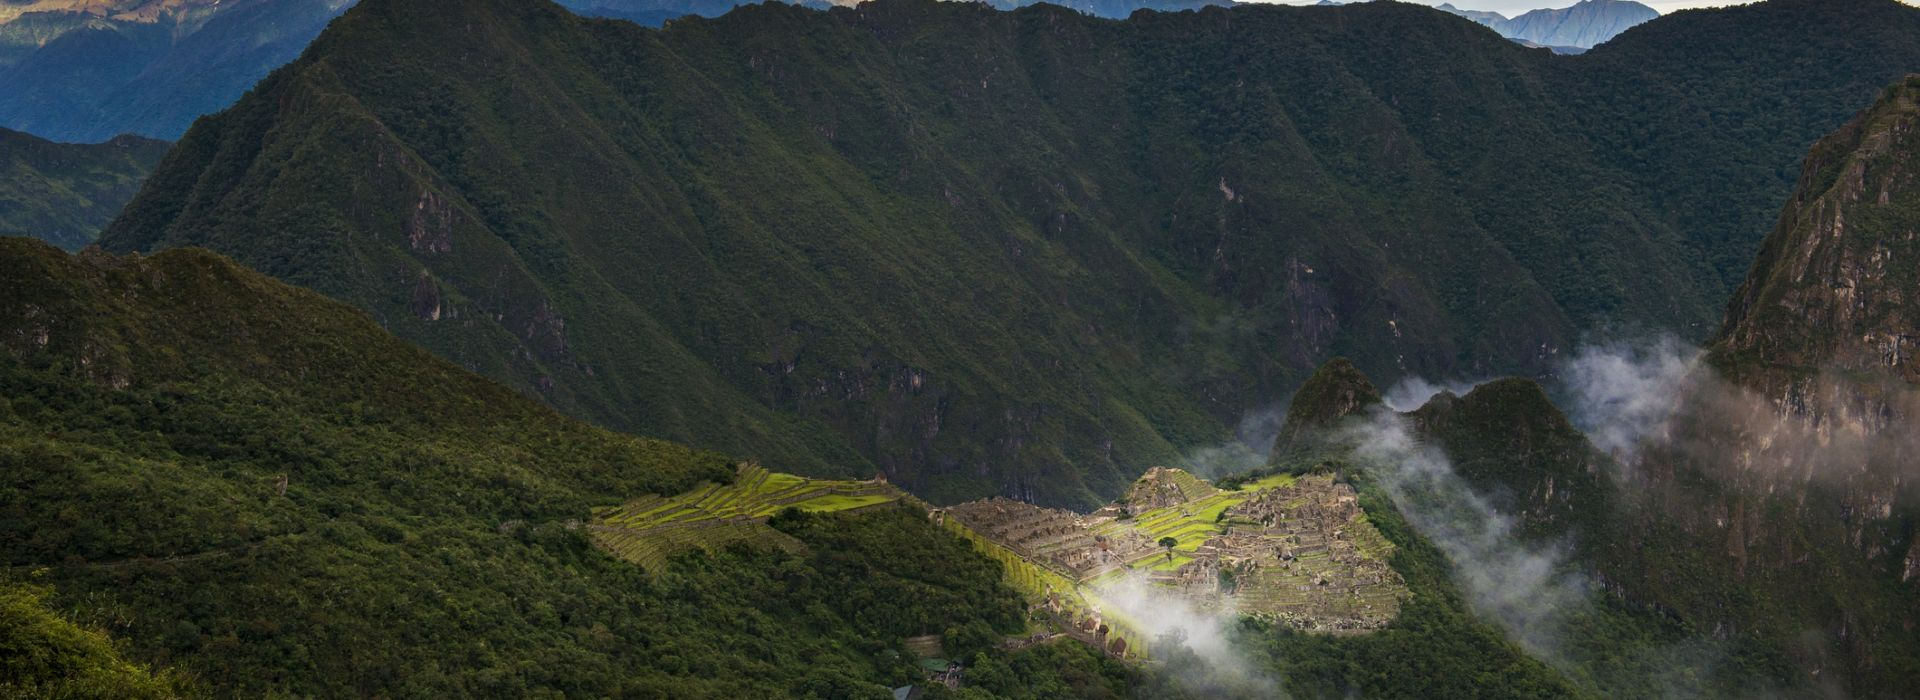 Travelling to Machu Picchu – Tours and Holiday Packages in Machu Picchu